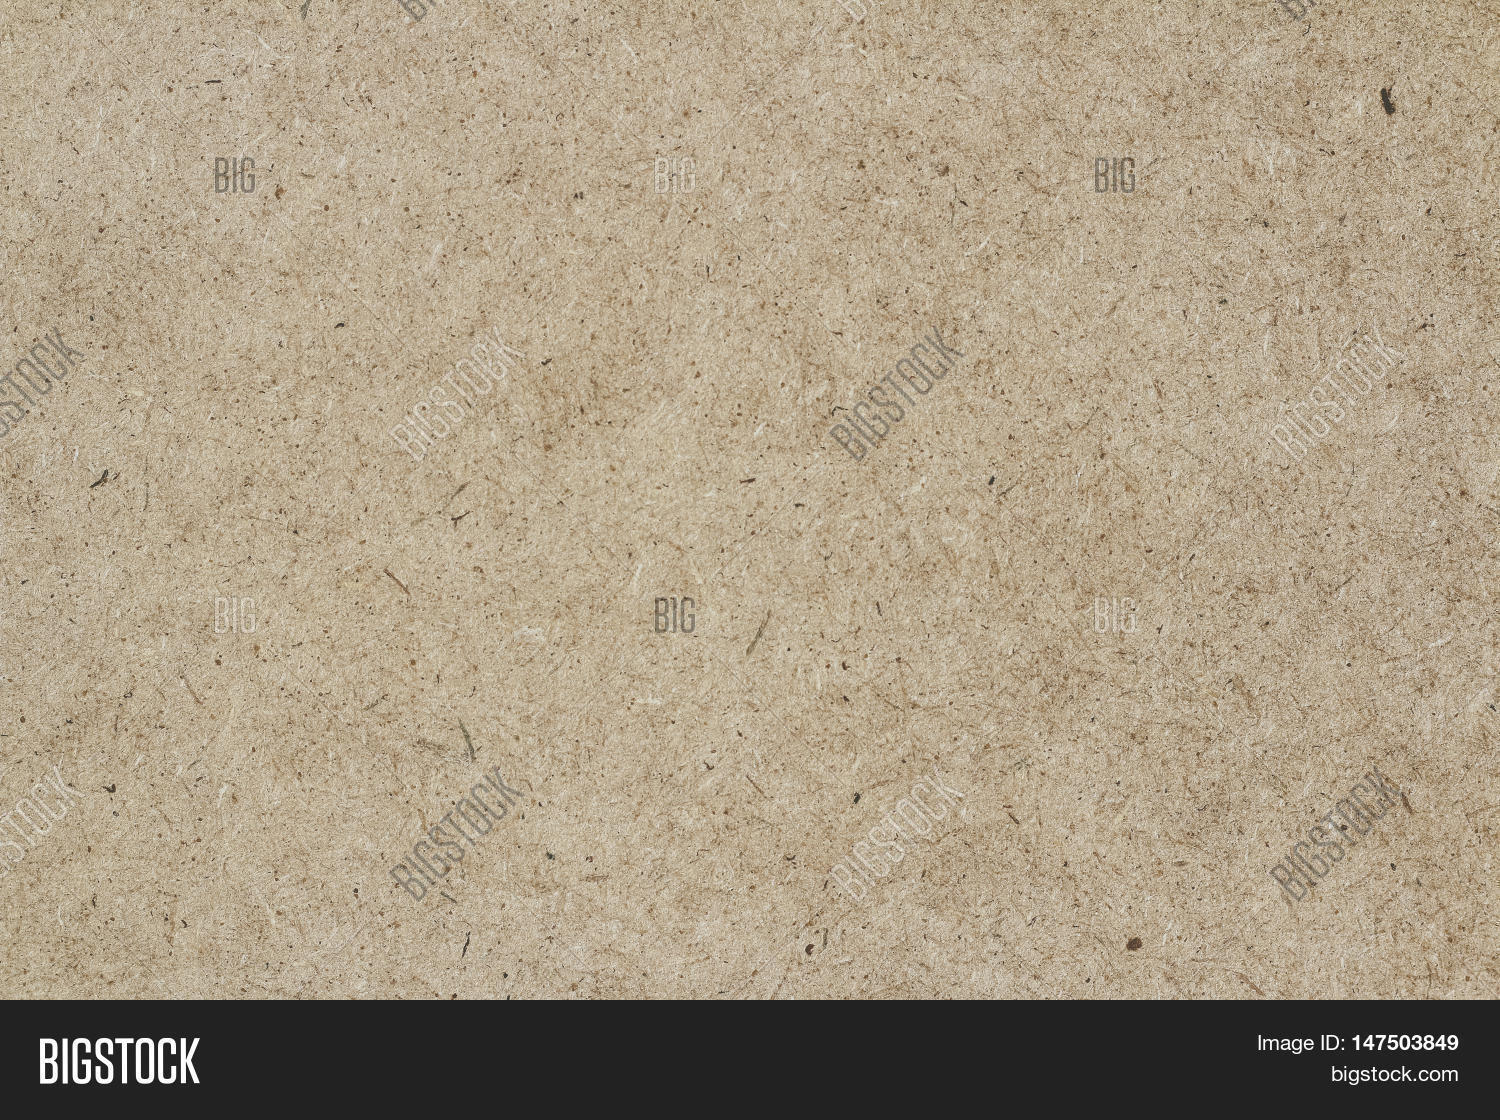 Pastel Brown Plywood Plank Floor Painted Grey Top Table Old Wooden Texture Background Beech